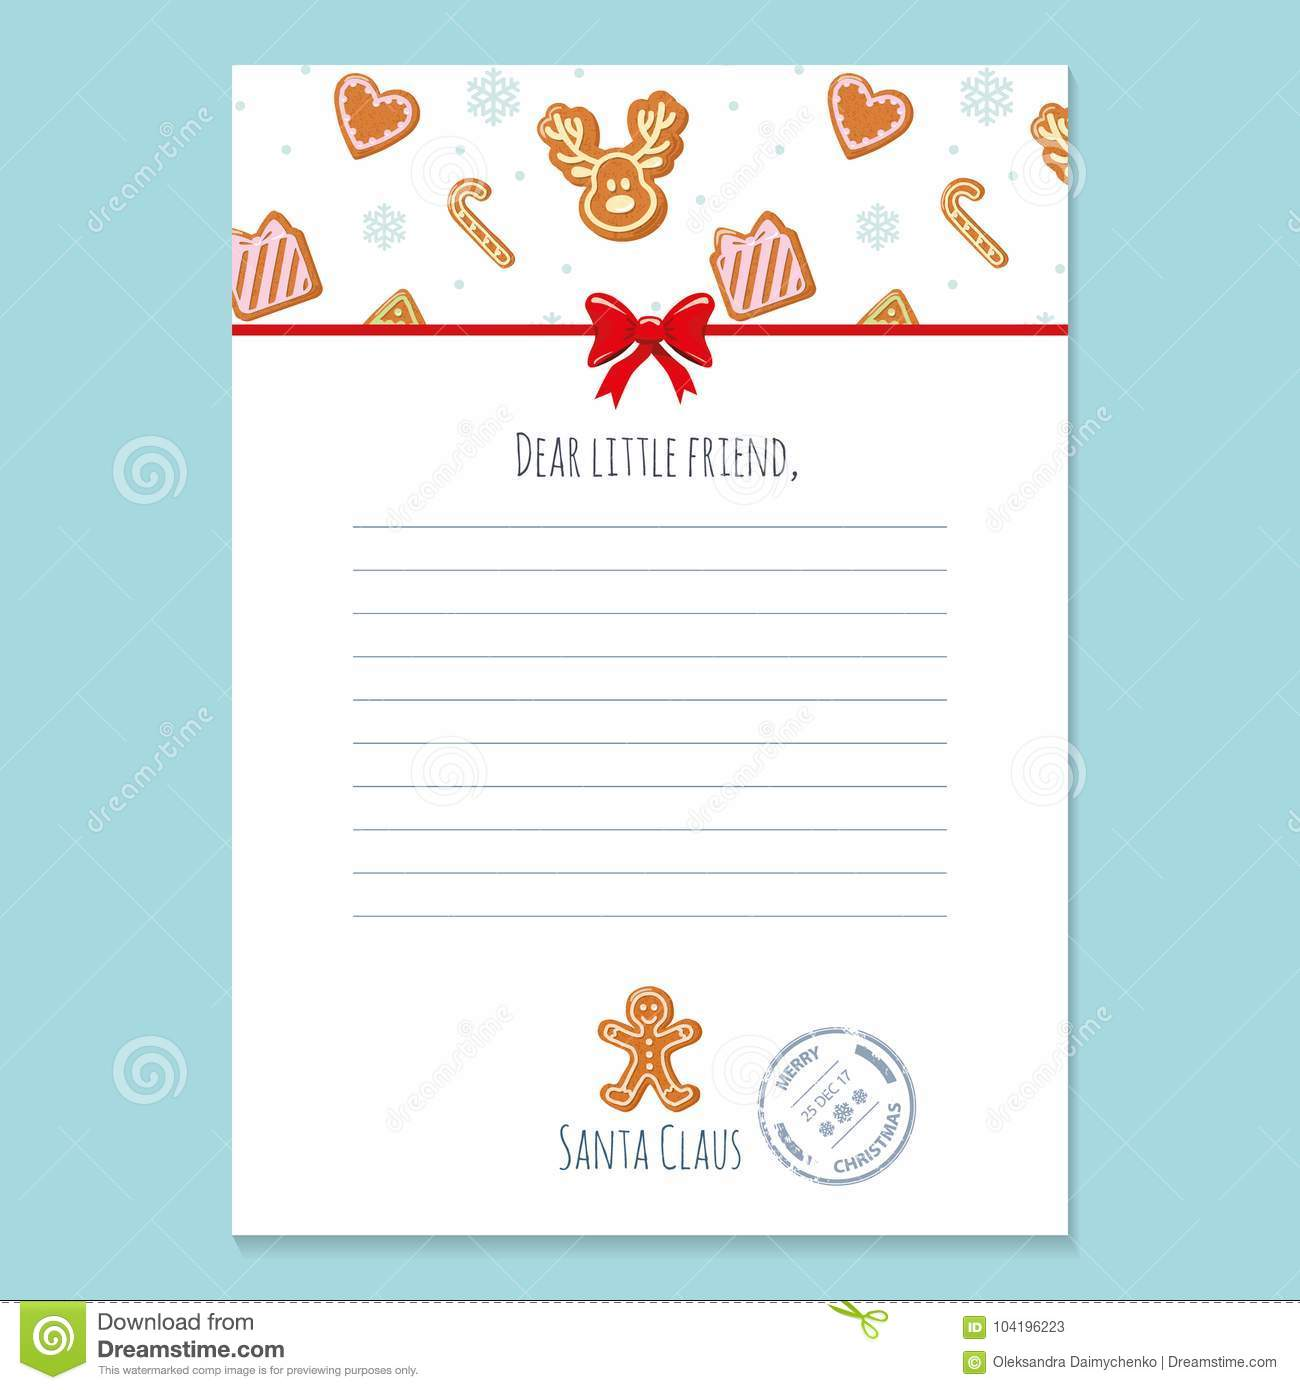 Christmas Letter From Santa Claus Template Layout In A4 Size